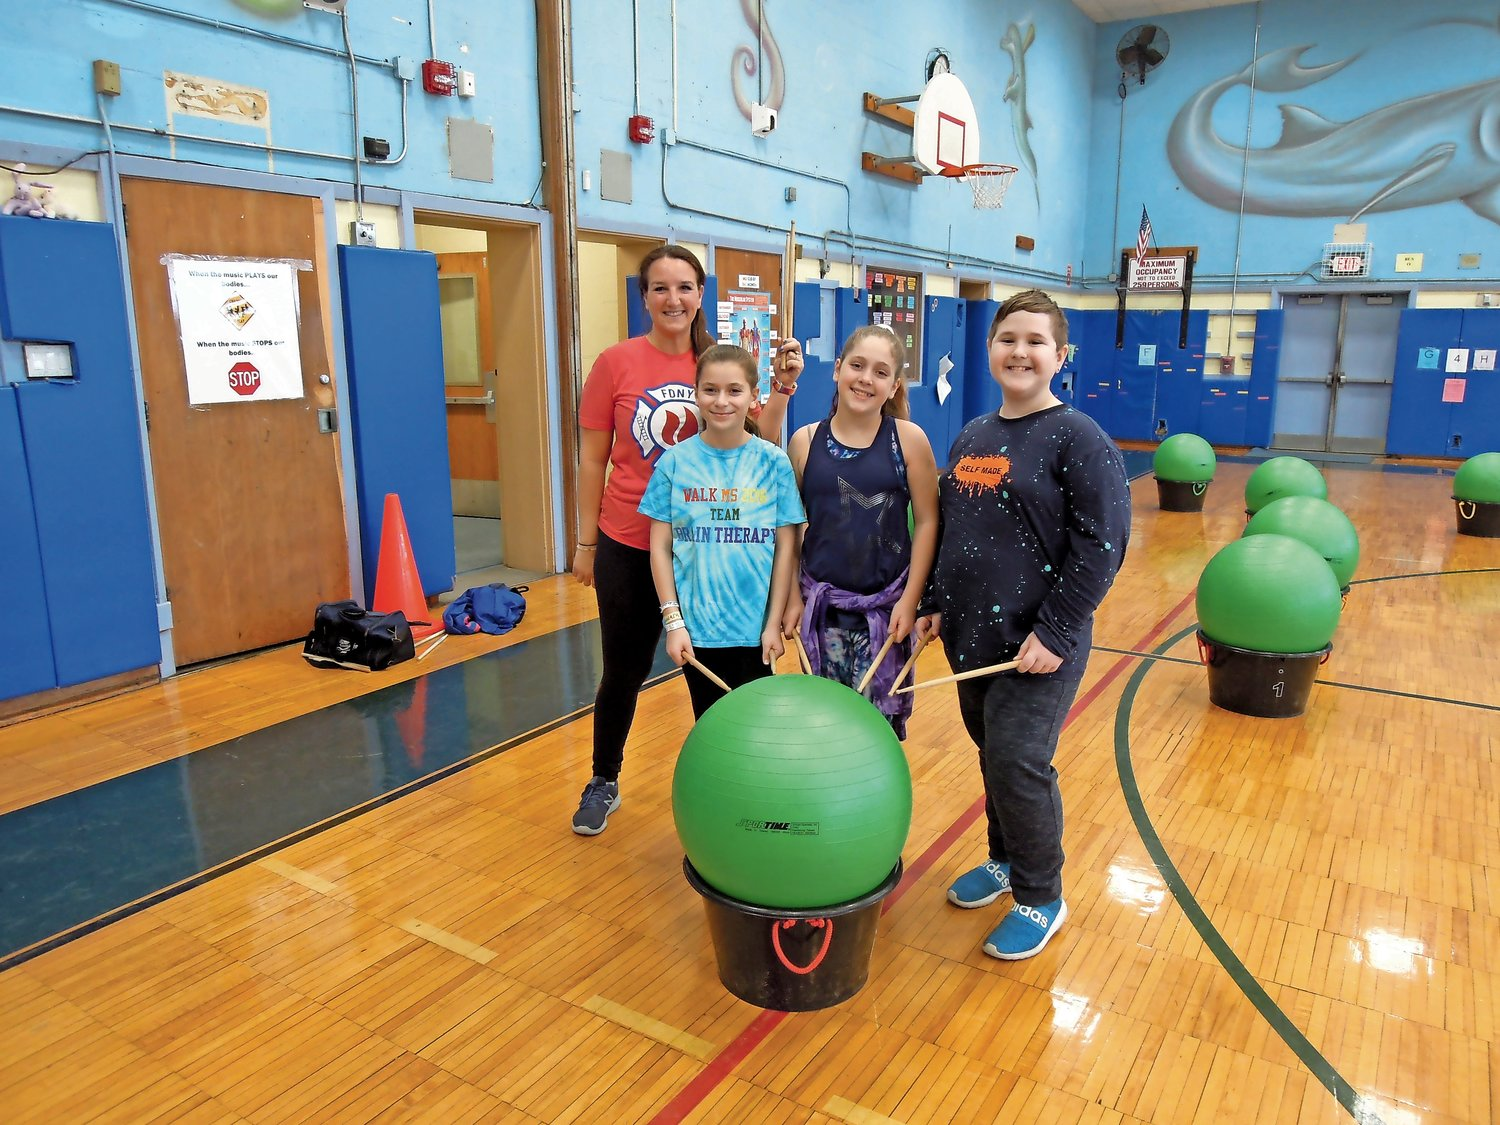 Mandalay physical education teacher Robyn Pastuch, from left, Addison Gottlieb, Nikki Lonergan and Marc Walters explained why they like cardio drumming.